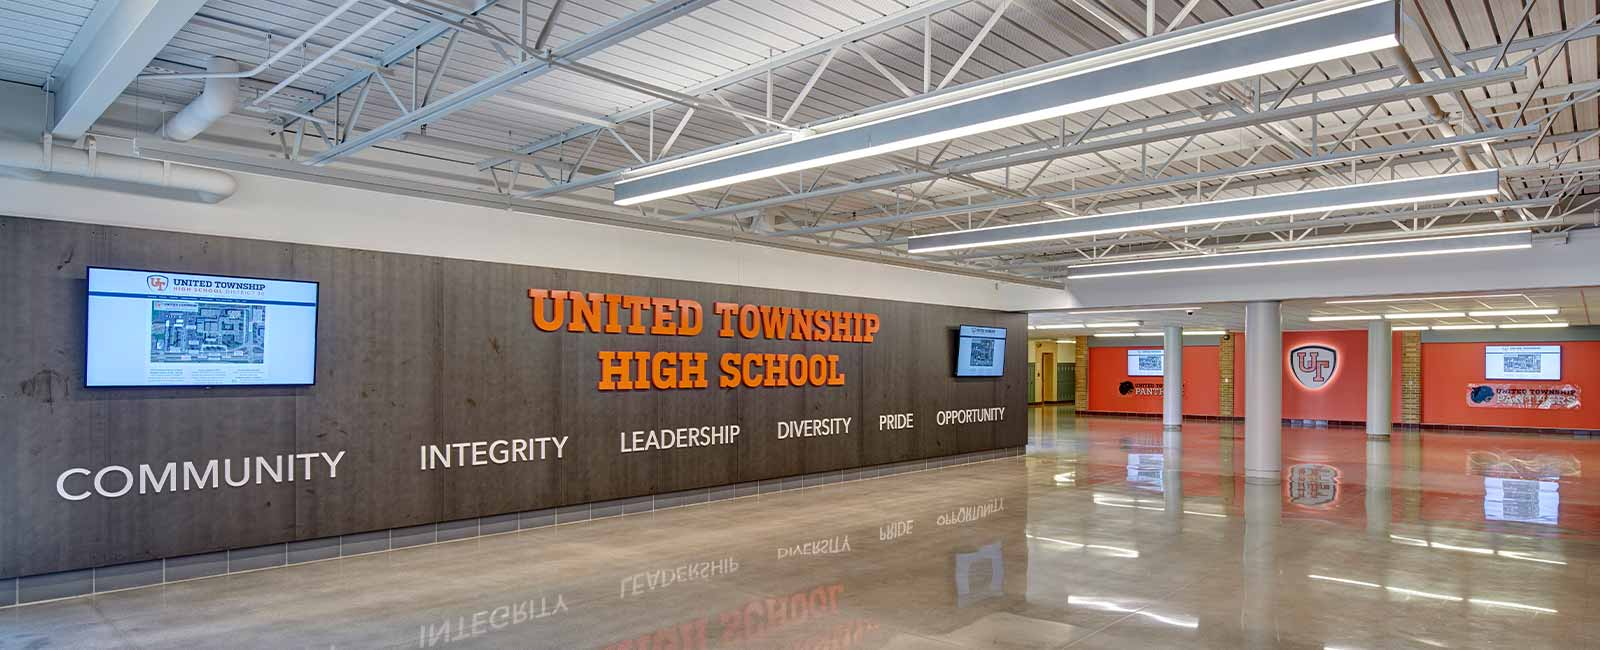 United Township High School – Student Life Center